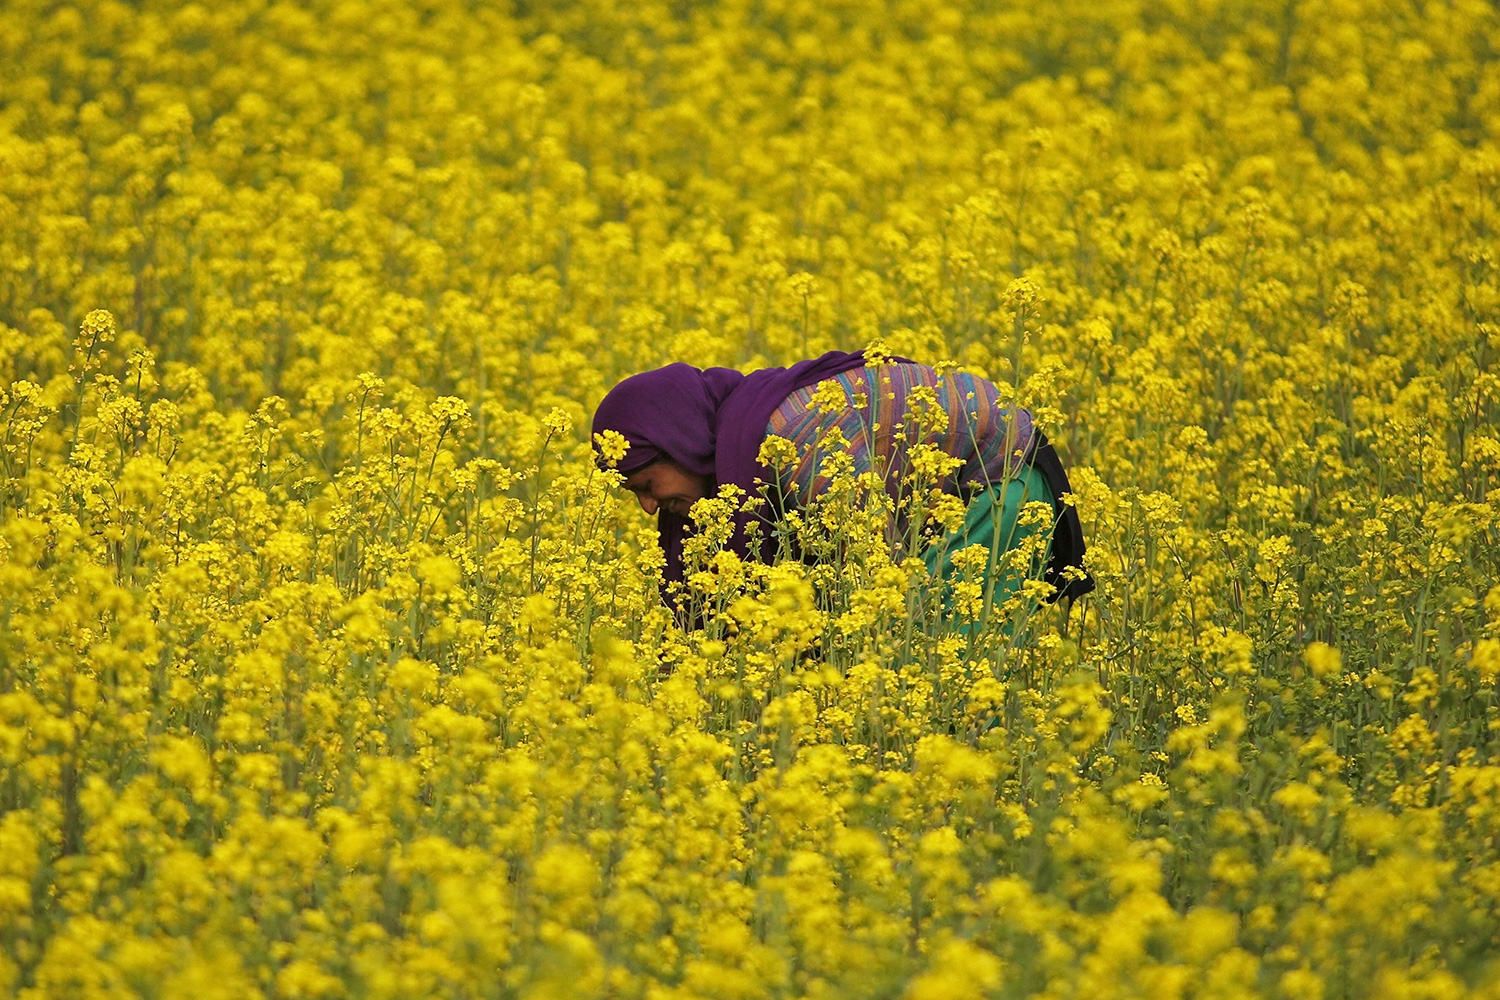 A million blooming flowers—and then some! Here a woman works inside her mustard field on the outskirts of Srinagar, India, on March 26, 2015. The photo shows a woman bending over in a field of bright yellow blossoms. REU-TERS/Danish Ismail